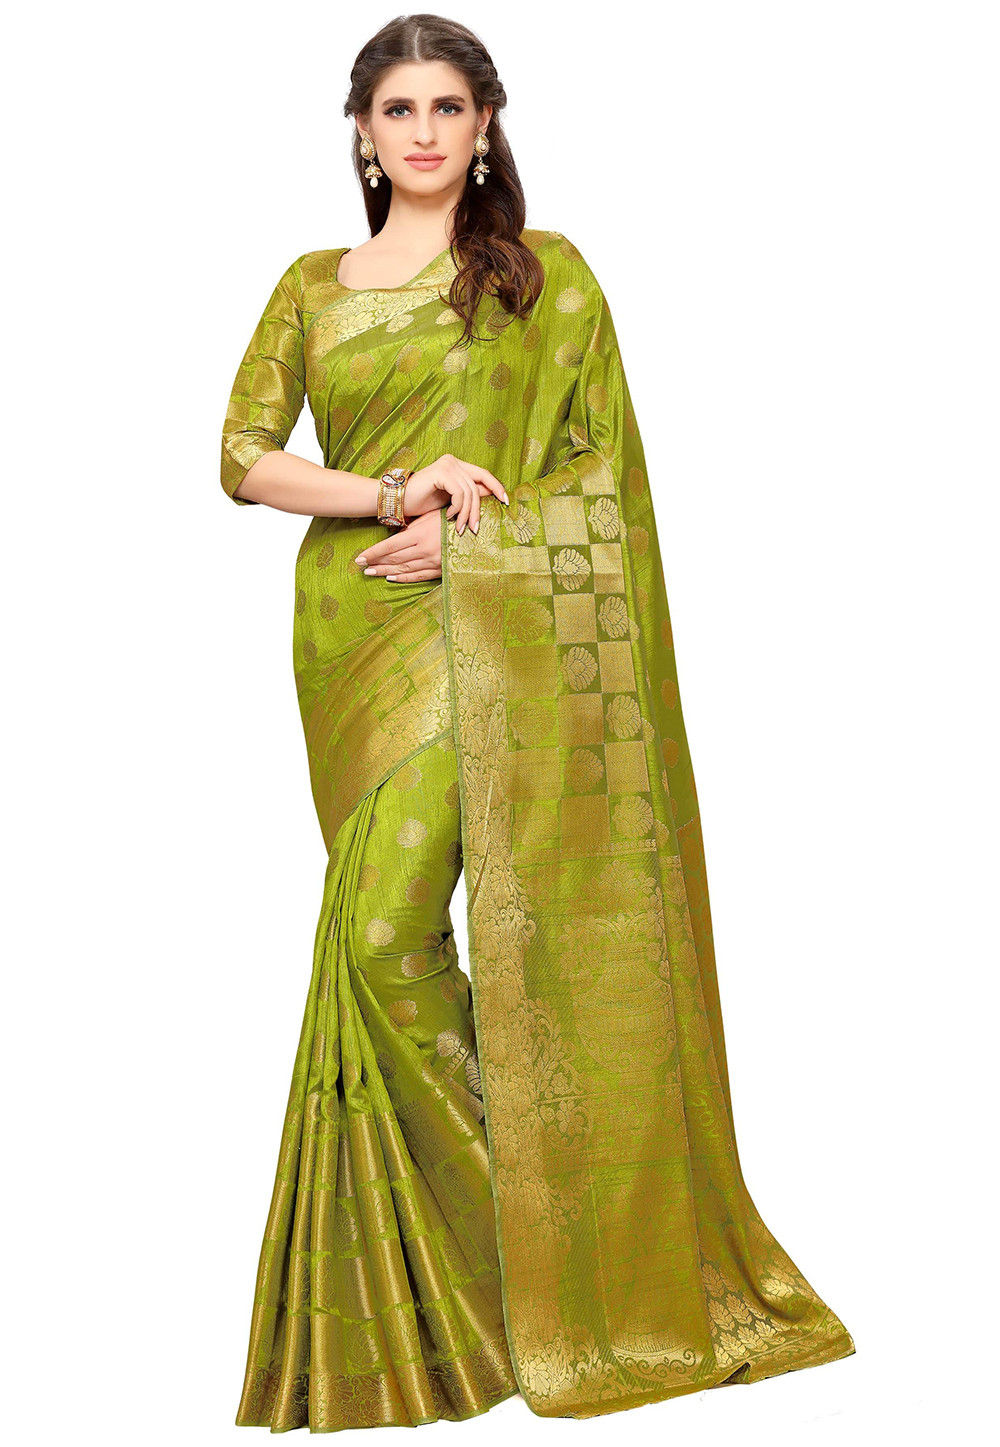 Woven Dupion Silk Saree in Olive Green